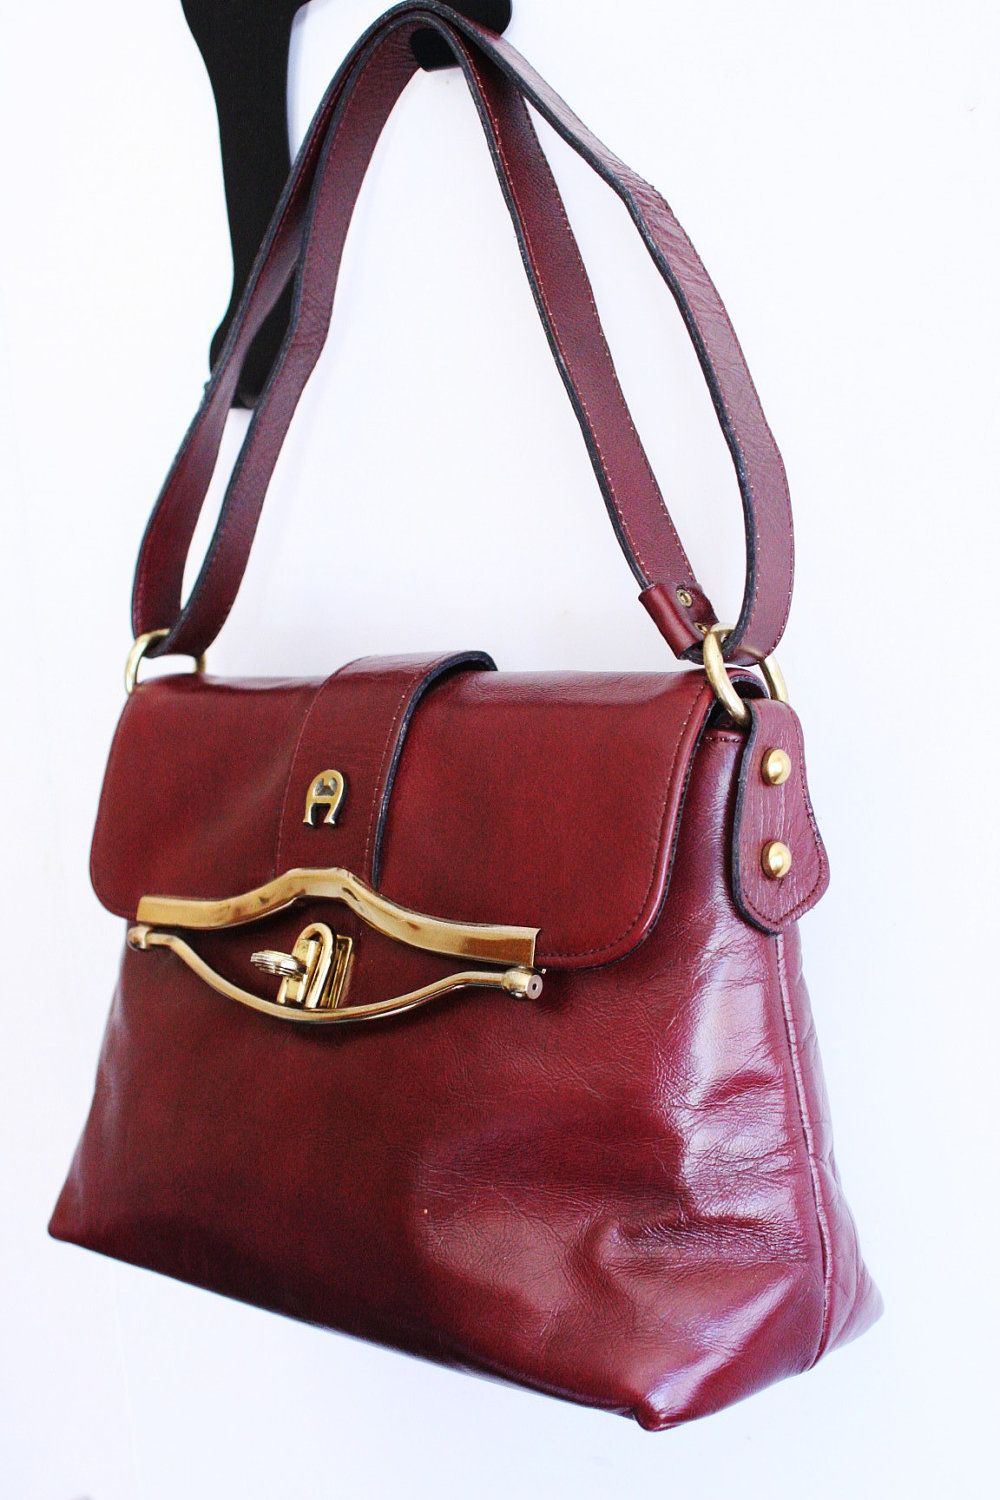 754f96ca8ca2 Etienne Aigner Vintage 1970 s Leather Purse Oxblood Calf Skin Huge ...